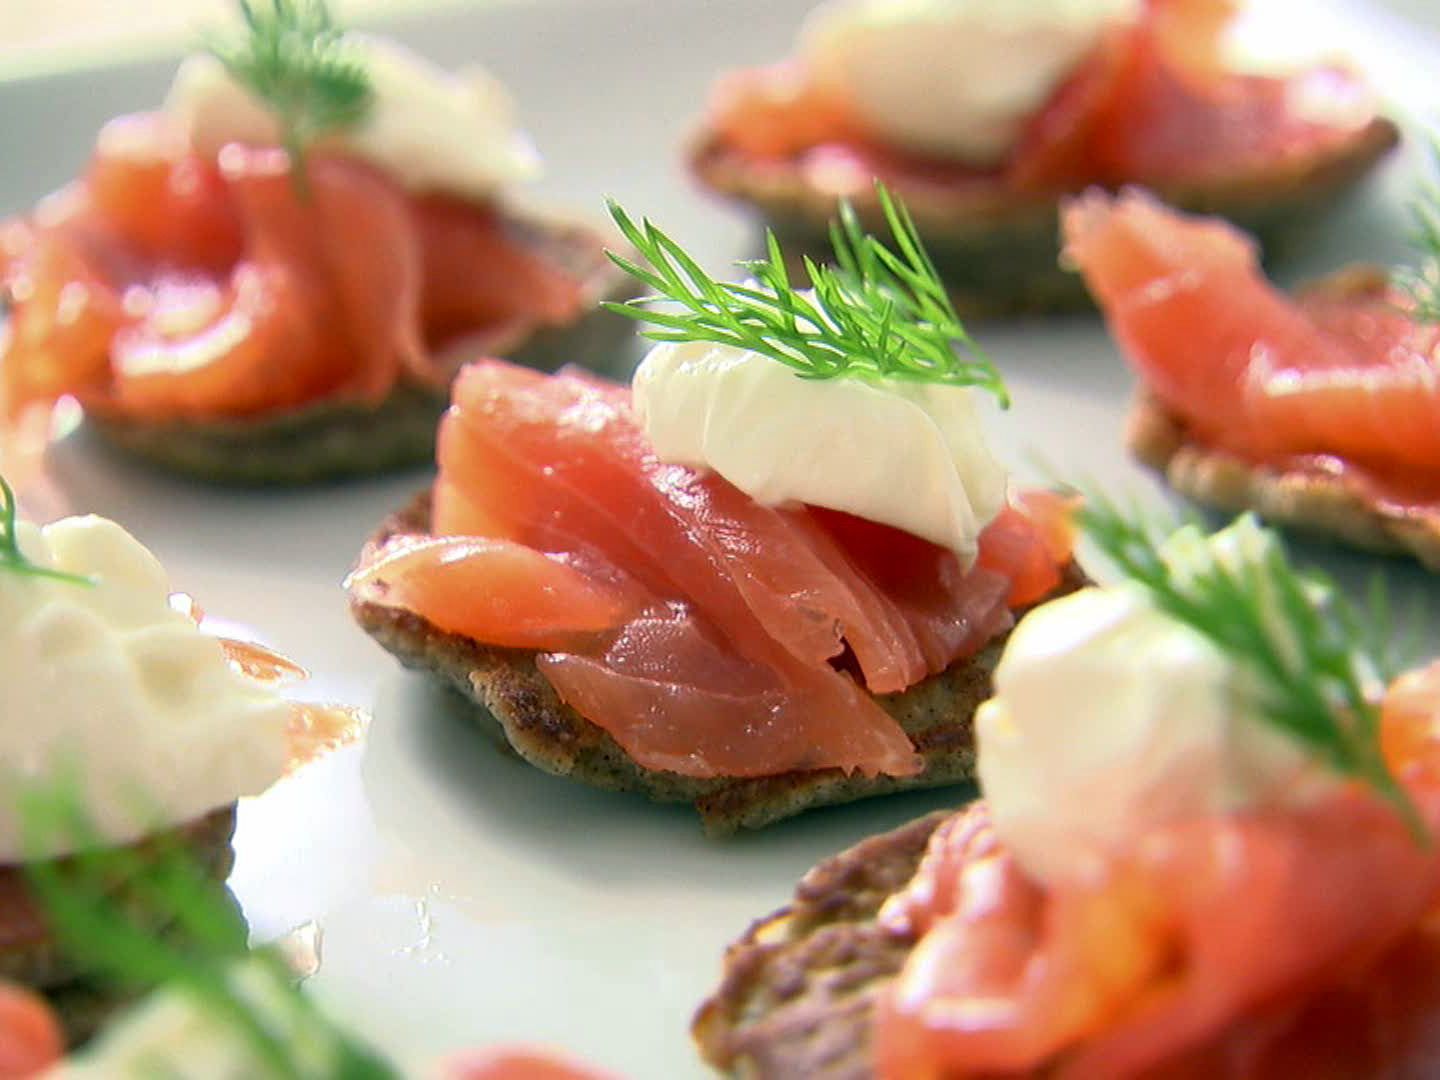 Blinis with creme fraiche and smoked salmon recipe ina garten blinis with creme fraiche and smoked salmon recipe ina garten food network foodnetwork forumfinder Gallery